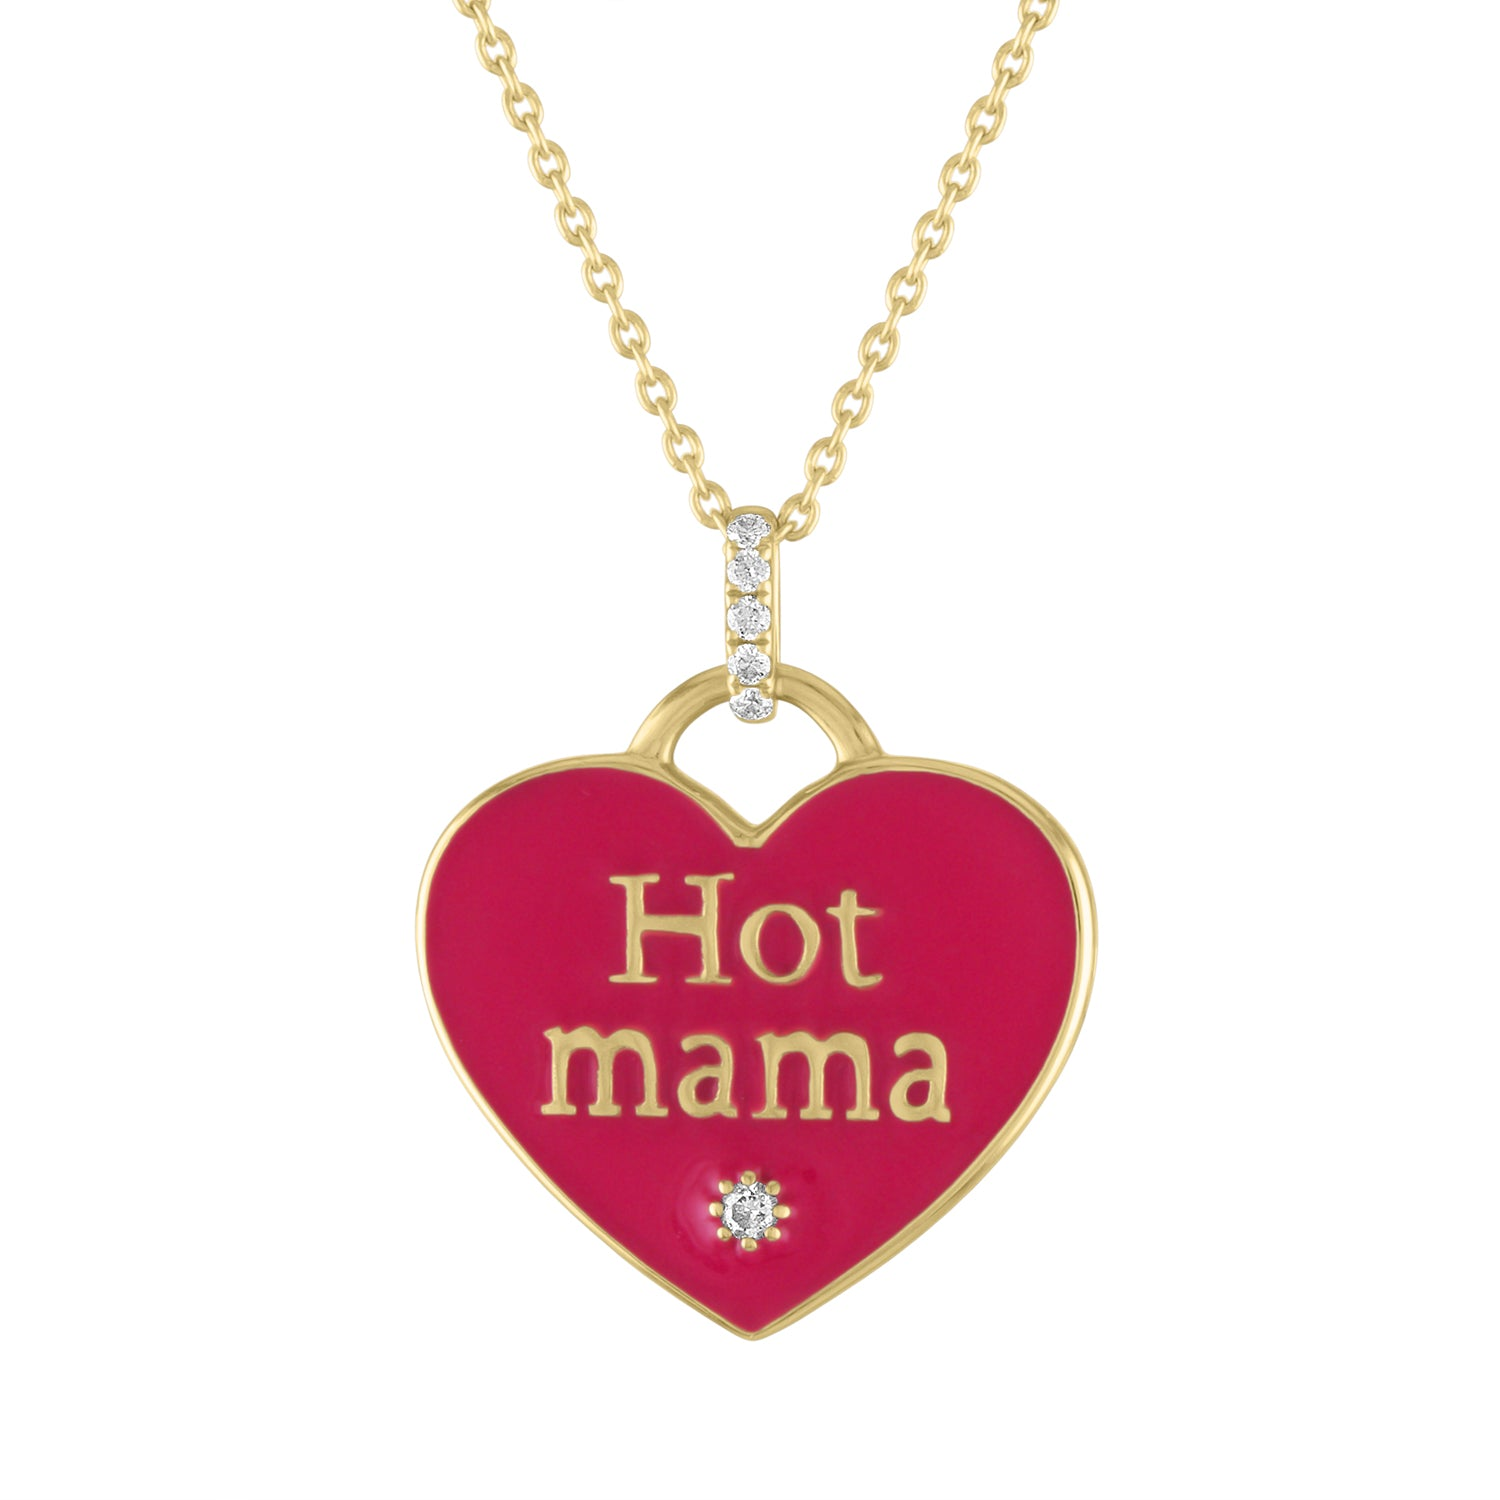 HOT MAMA RED ENAMEL NECKLACE